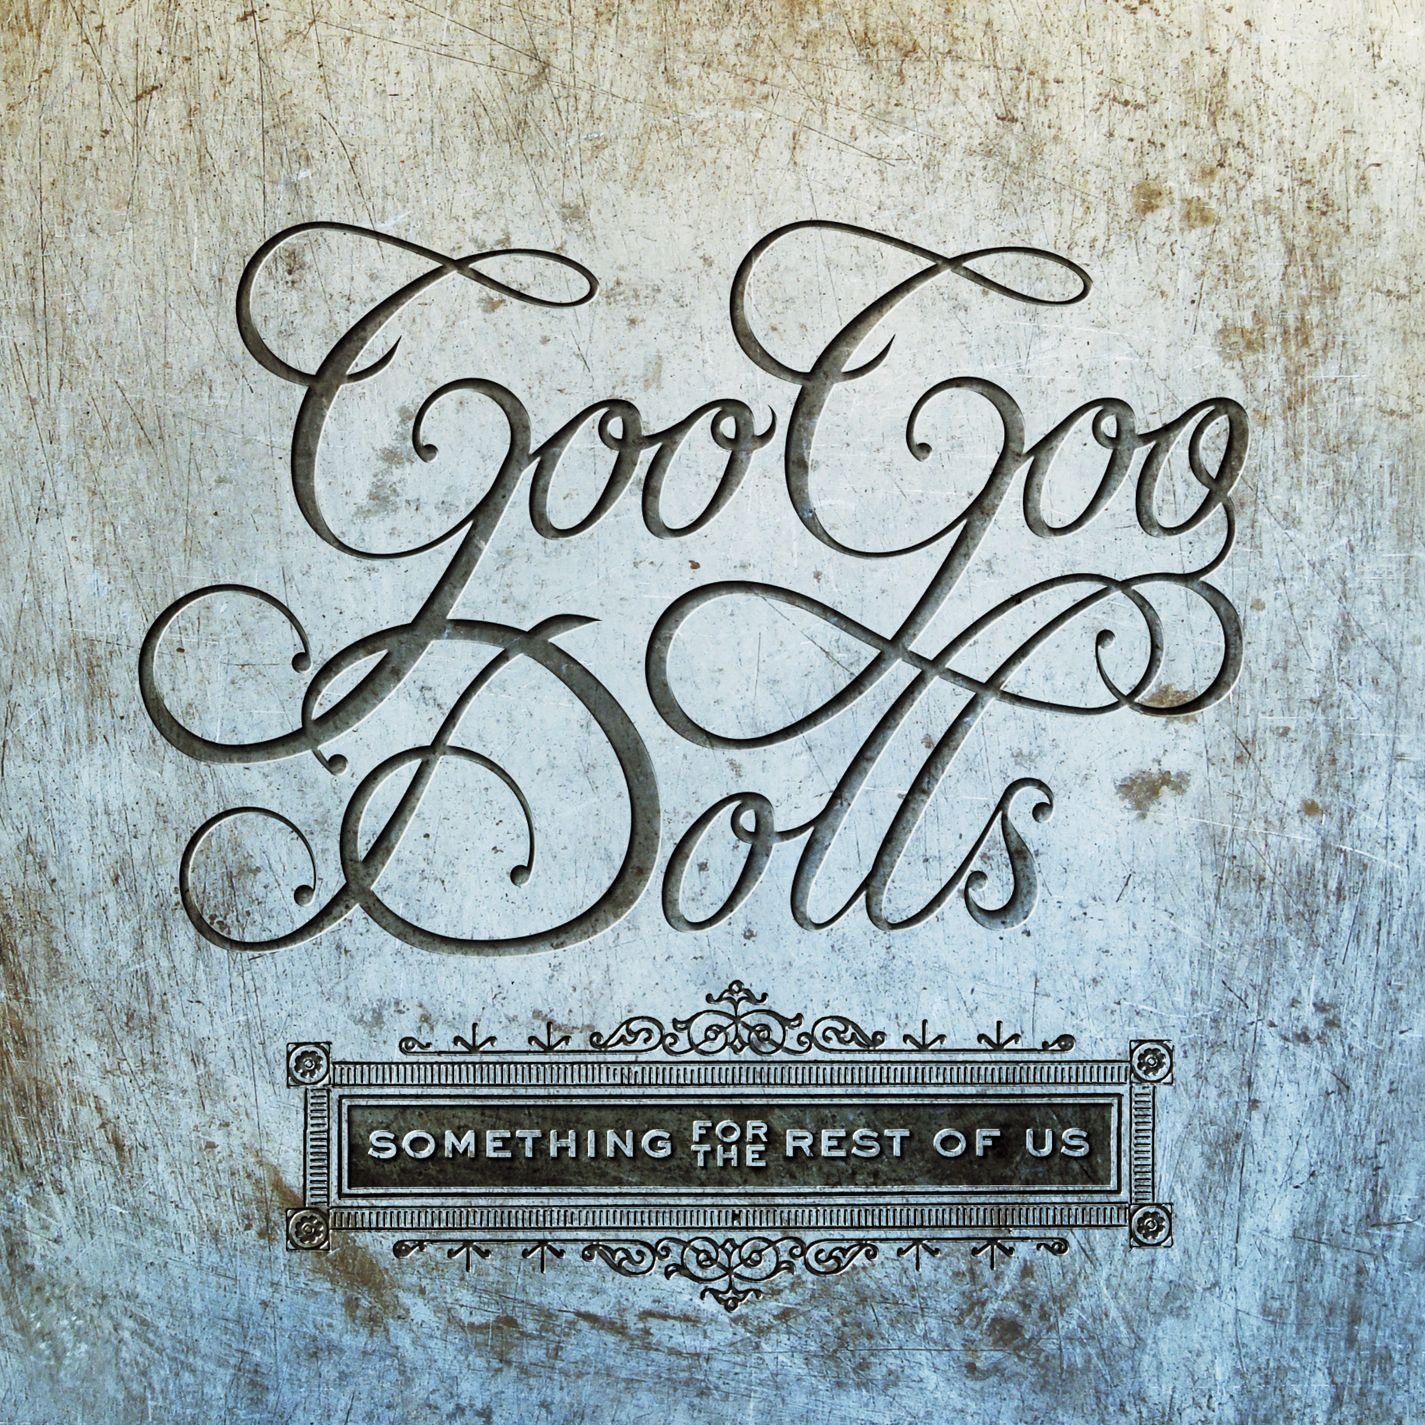 The Goo Goo Dolls - Something For The Rest Of Us - Amazon.com Music